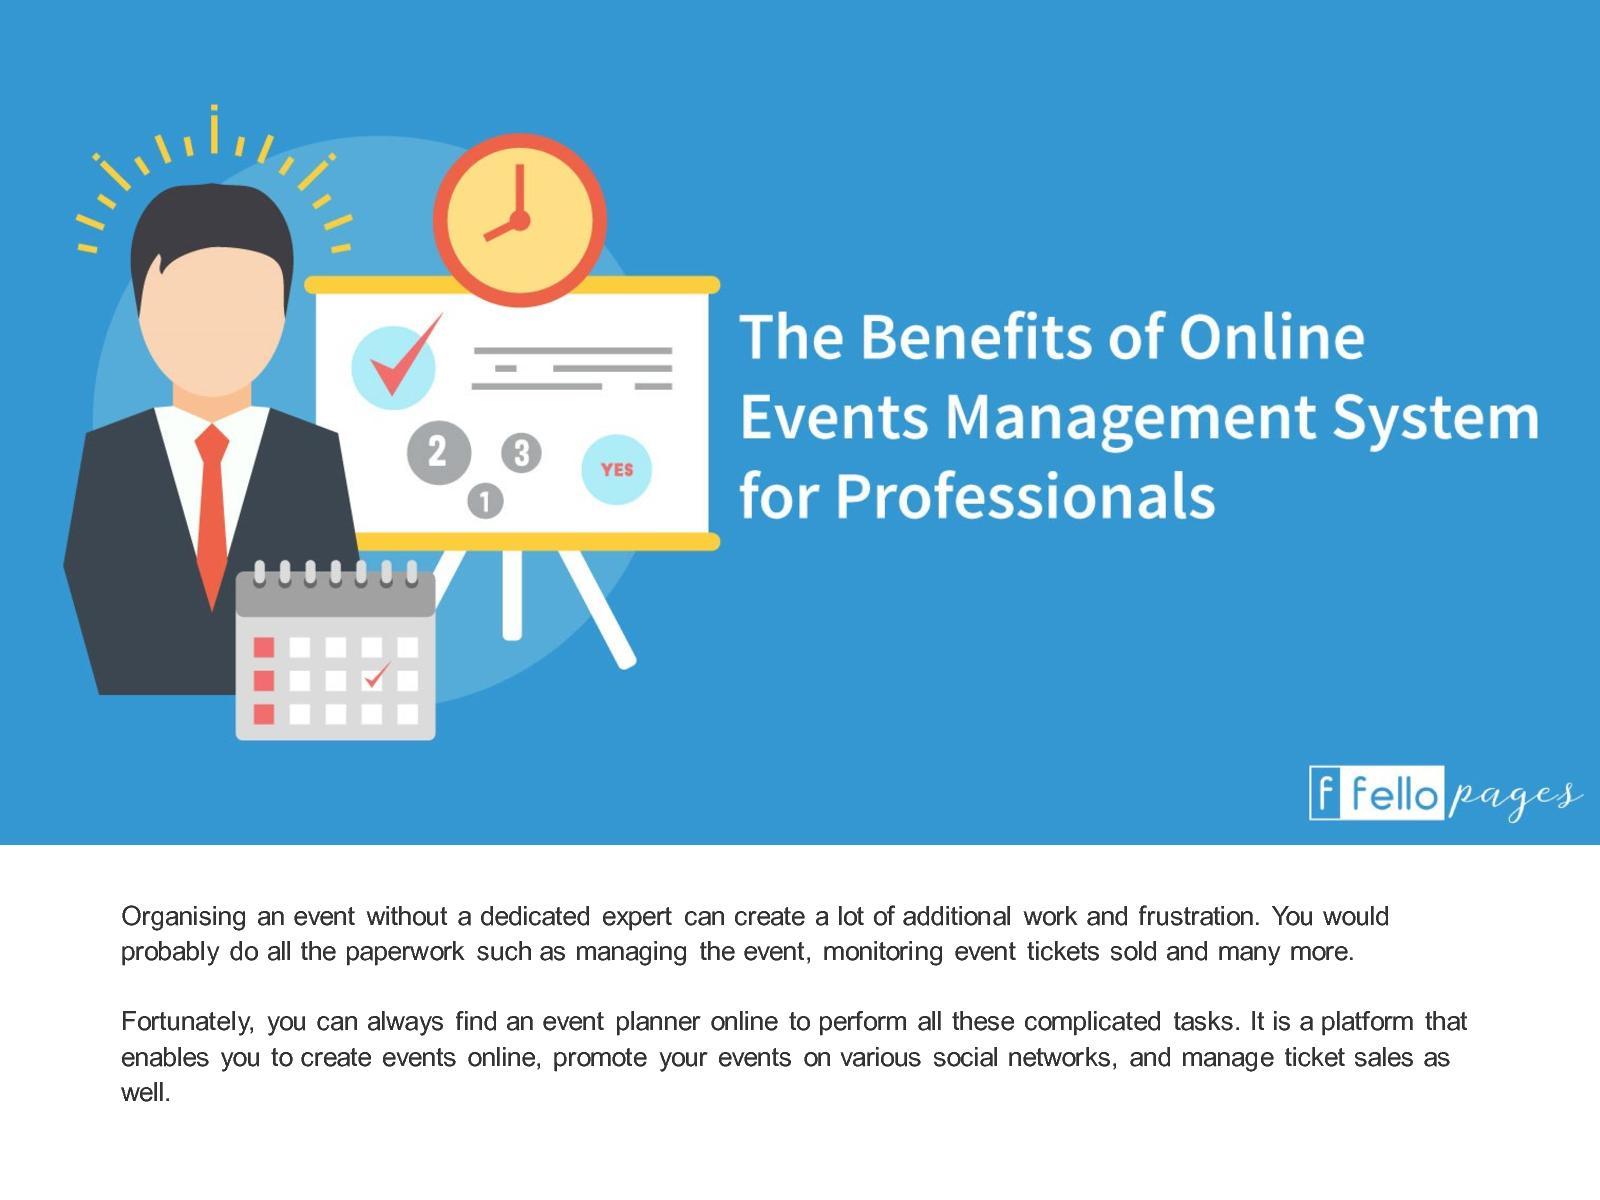 calaméo the benefits of online events management system for